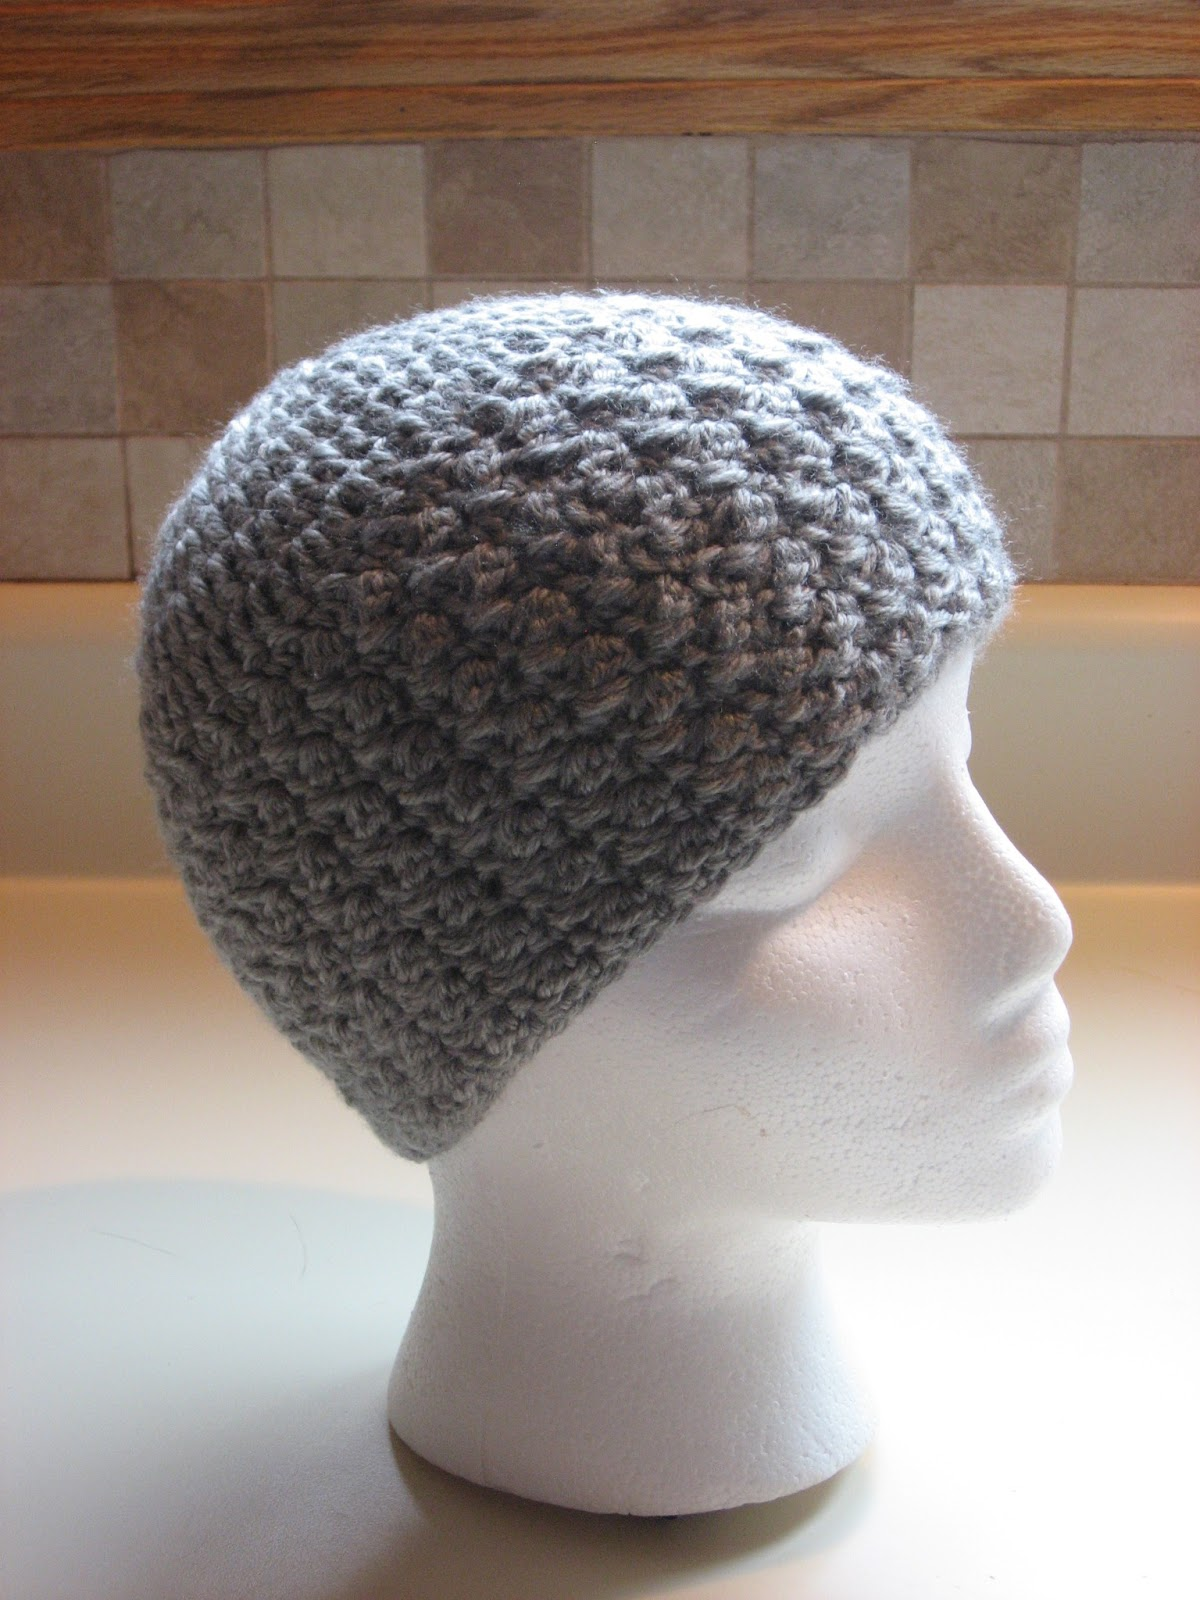 Crochet Projects More Chemo Hats